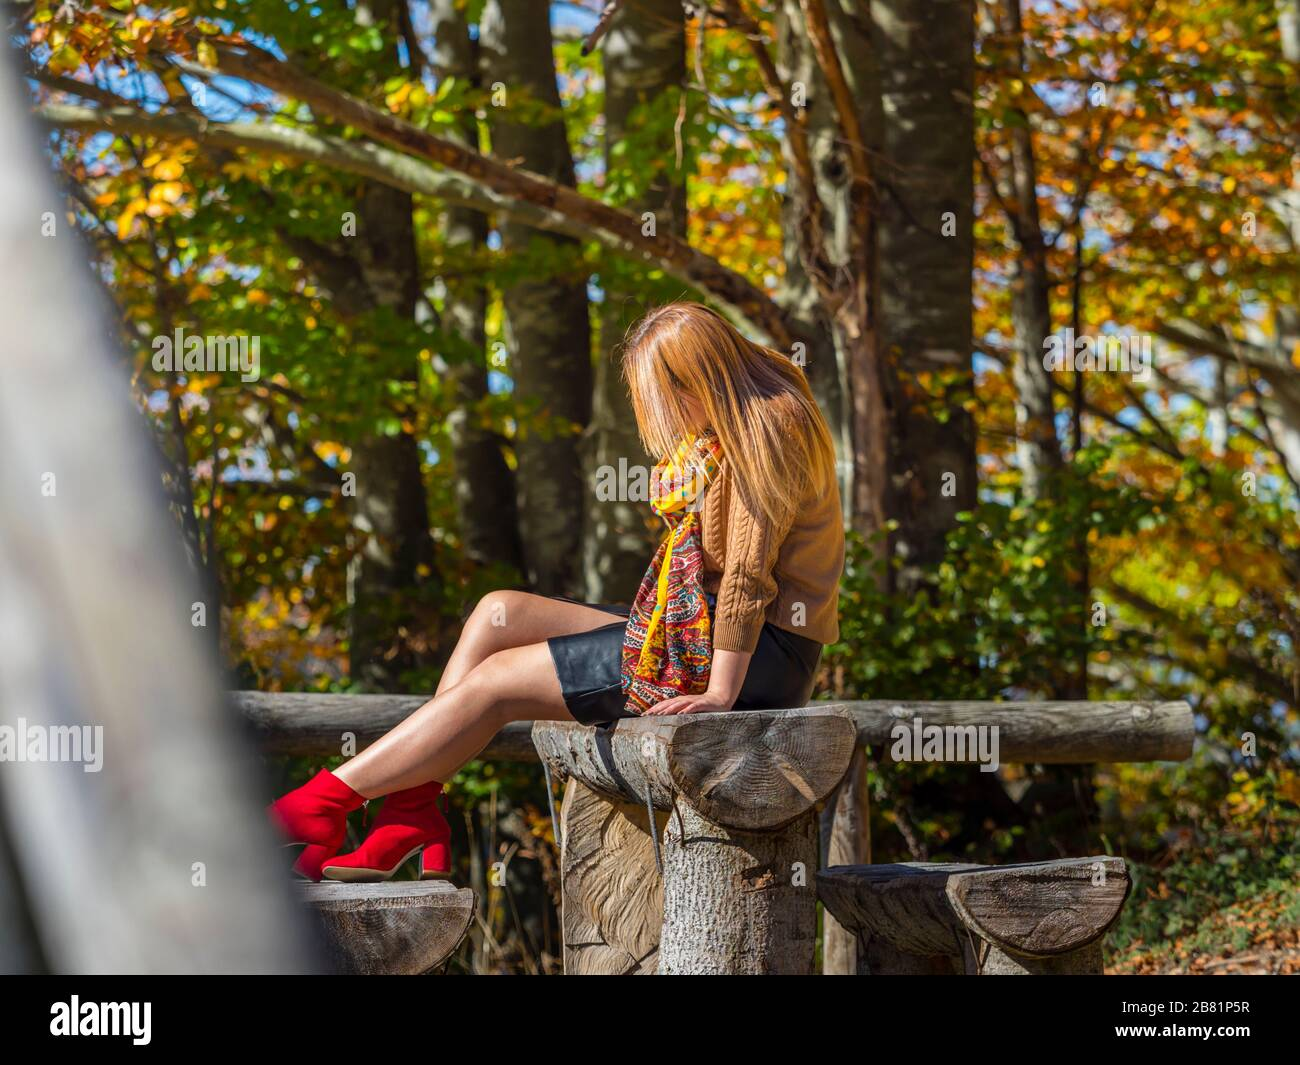 Stalking alone lonesome teen girl aka young woman outdoors outside in nature natural environment park Stock Photo